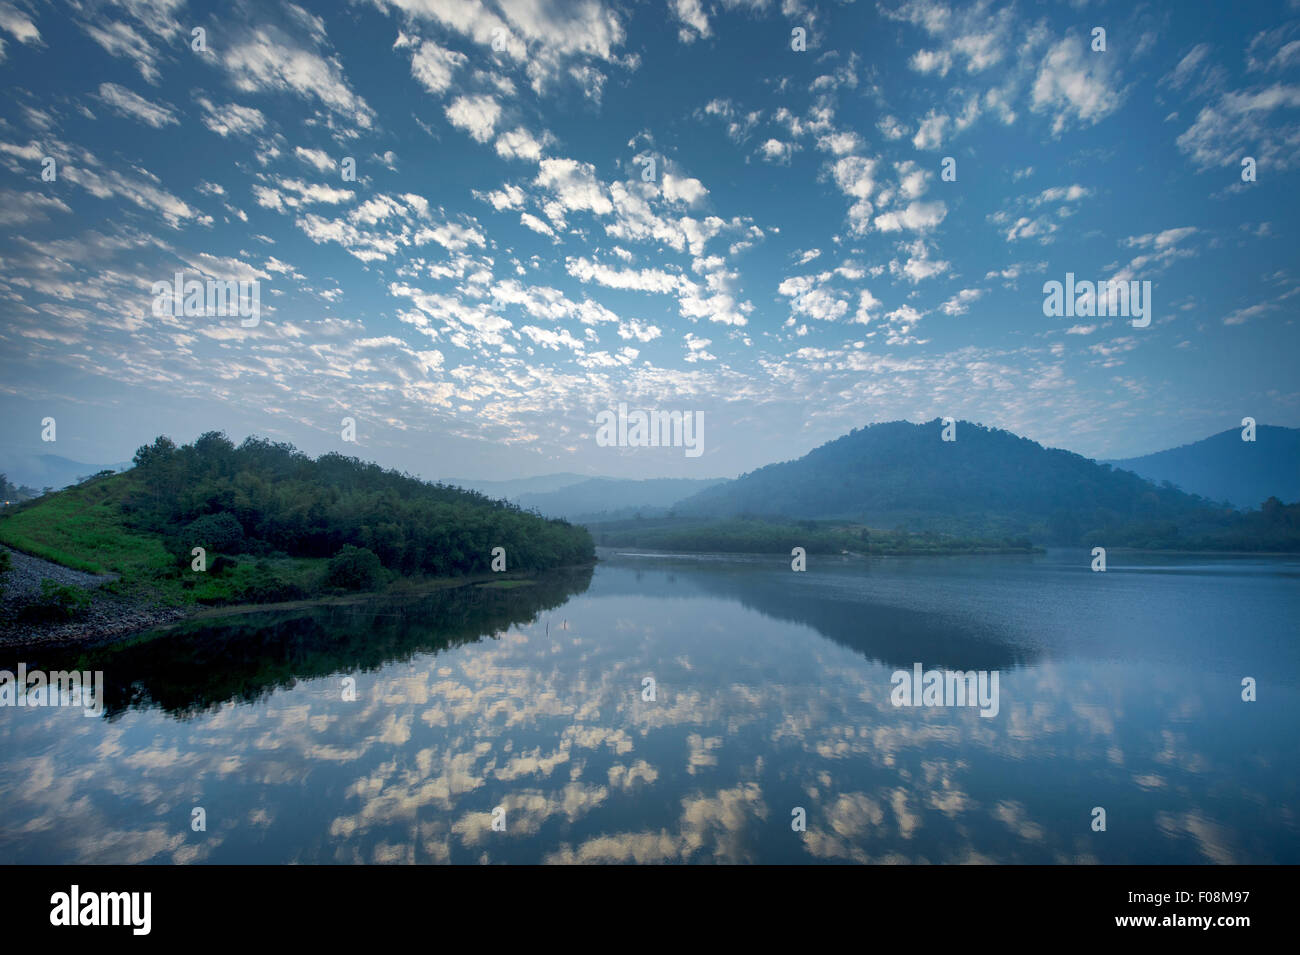 Cloud reflection on Lake Beris in the morning. - Stock Image